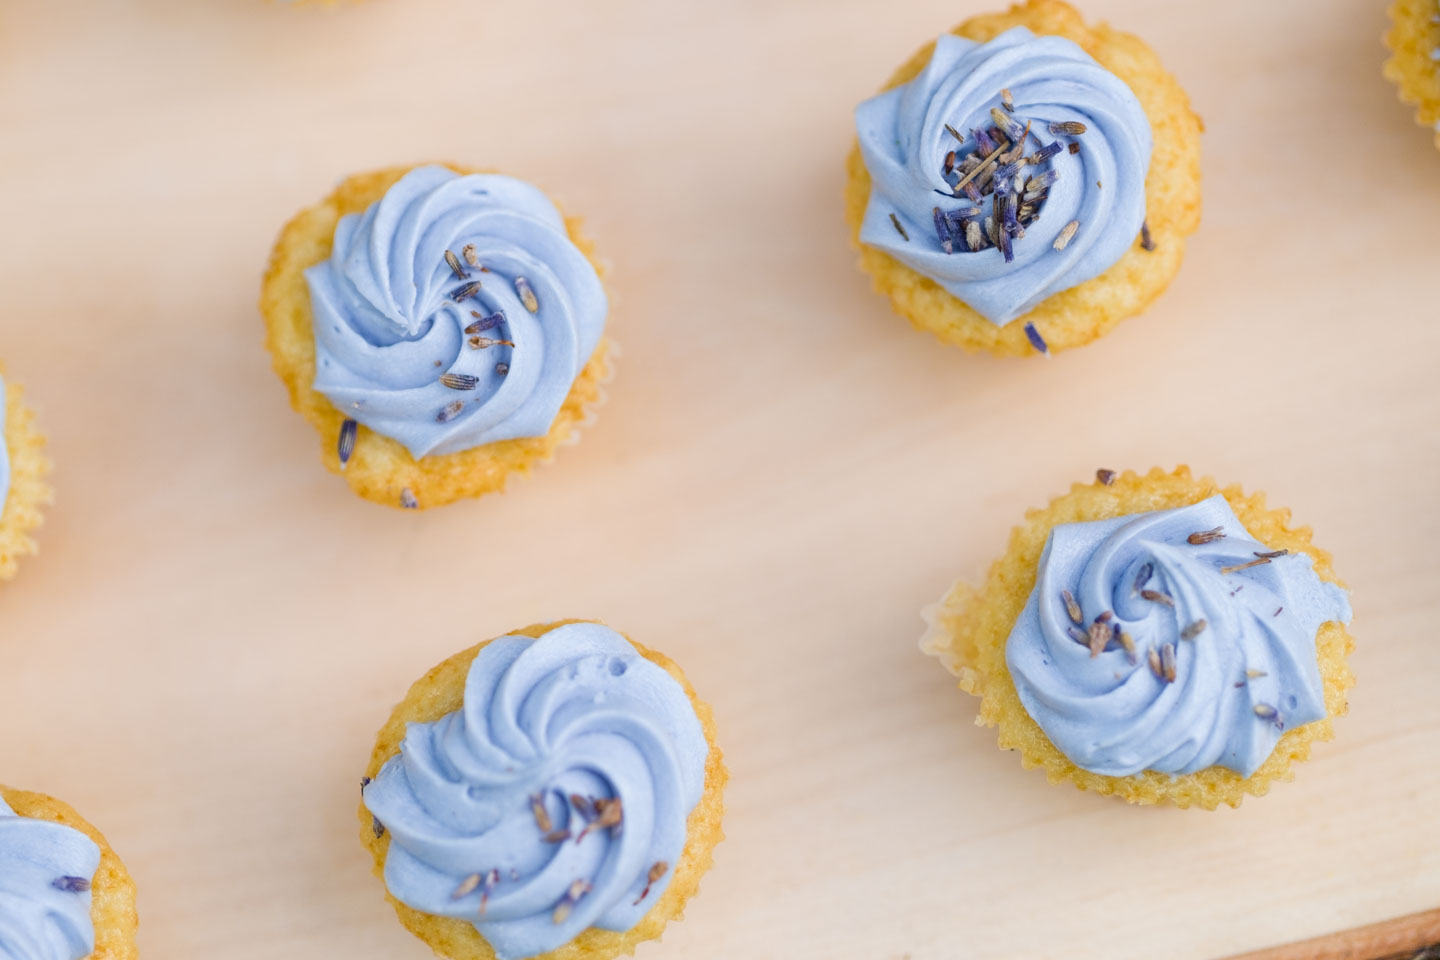 Lavender & lemon cupcakes by LUX Catering & Events